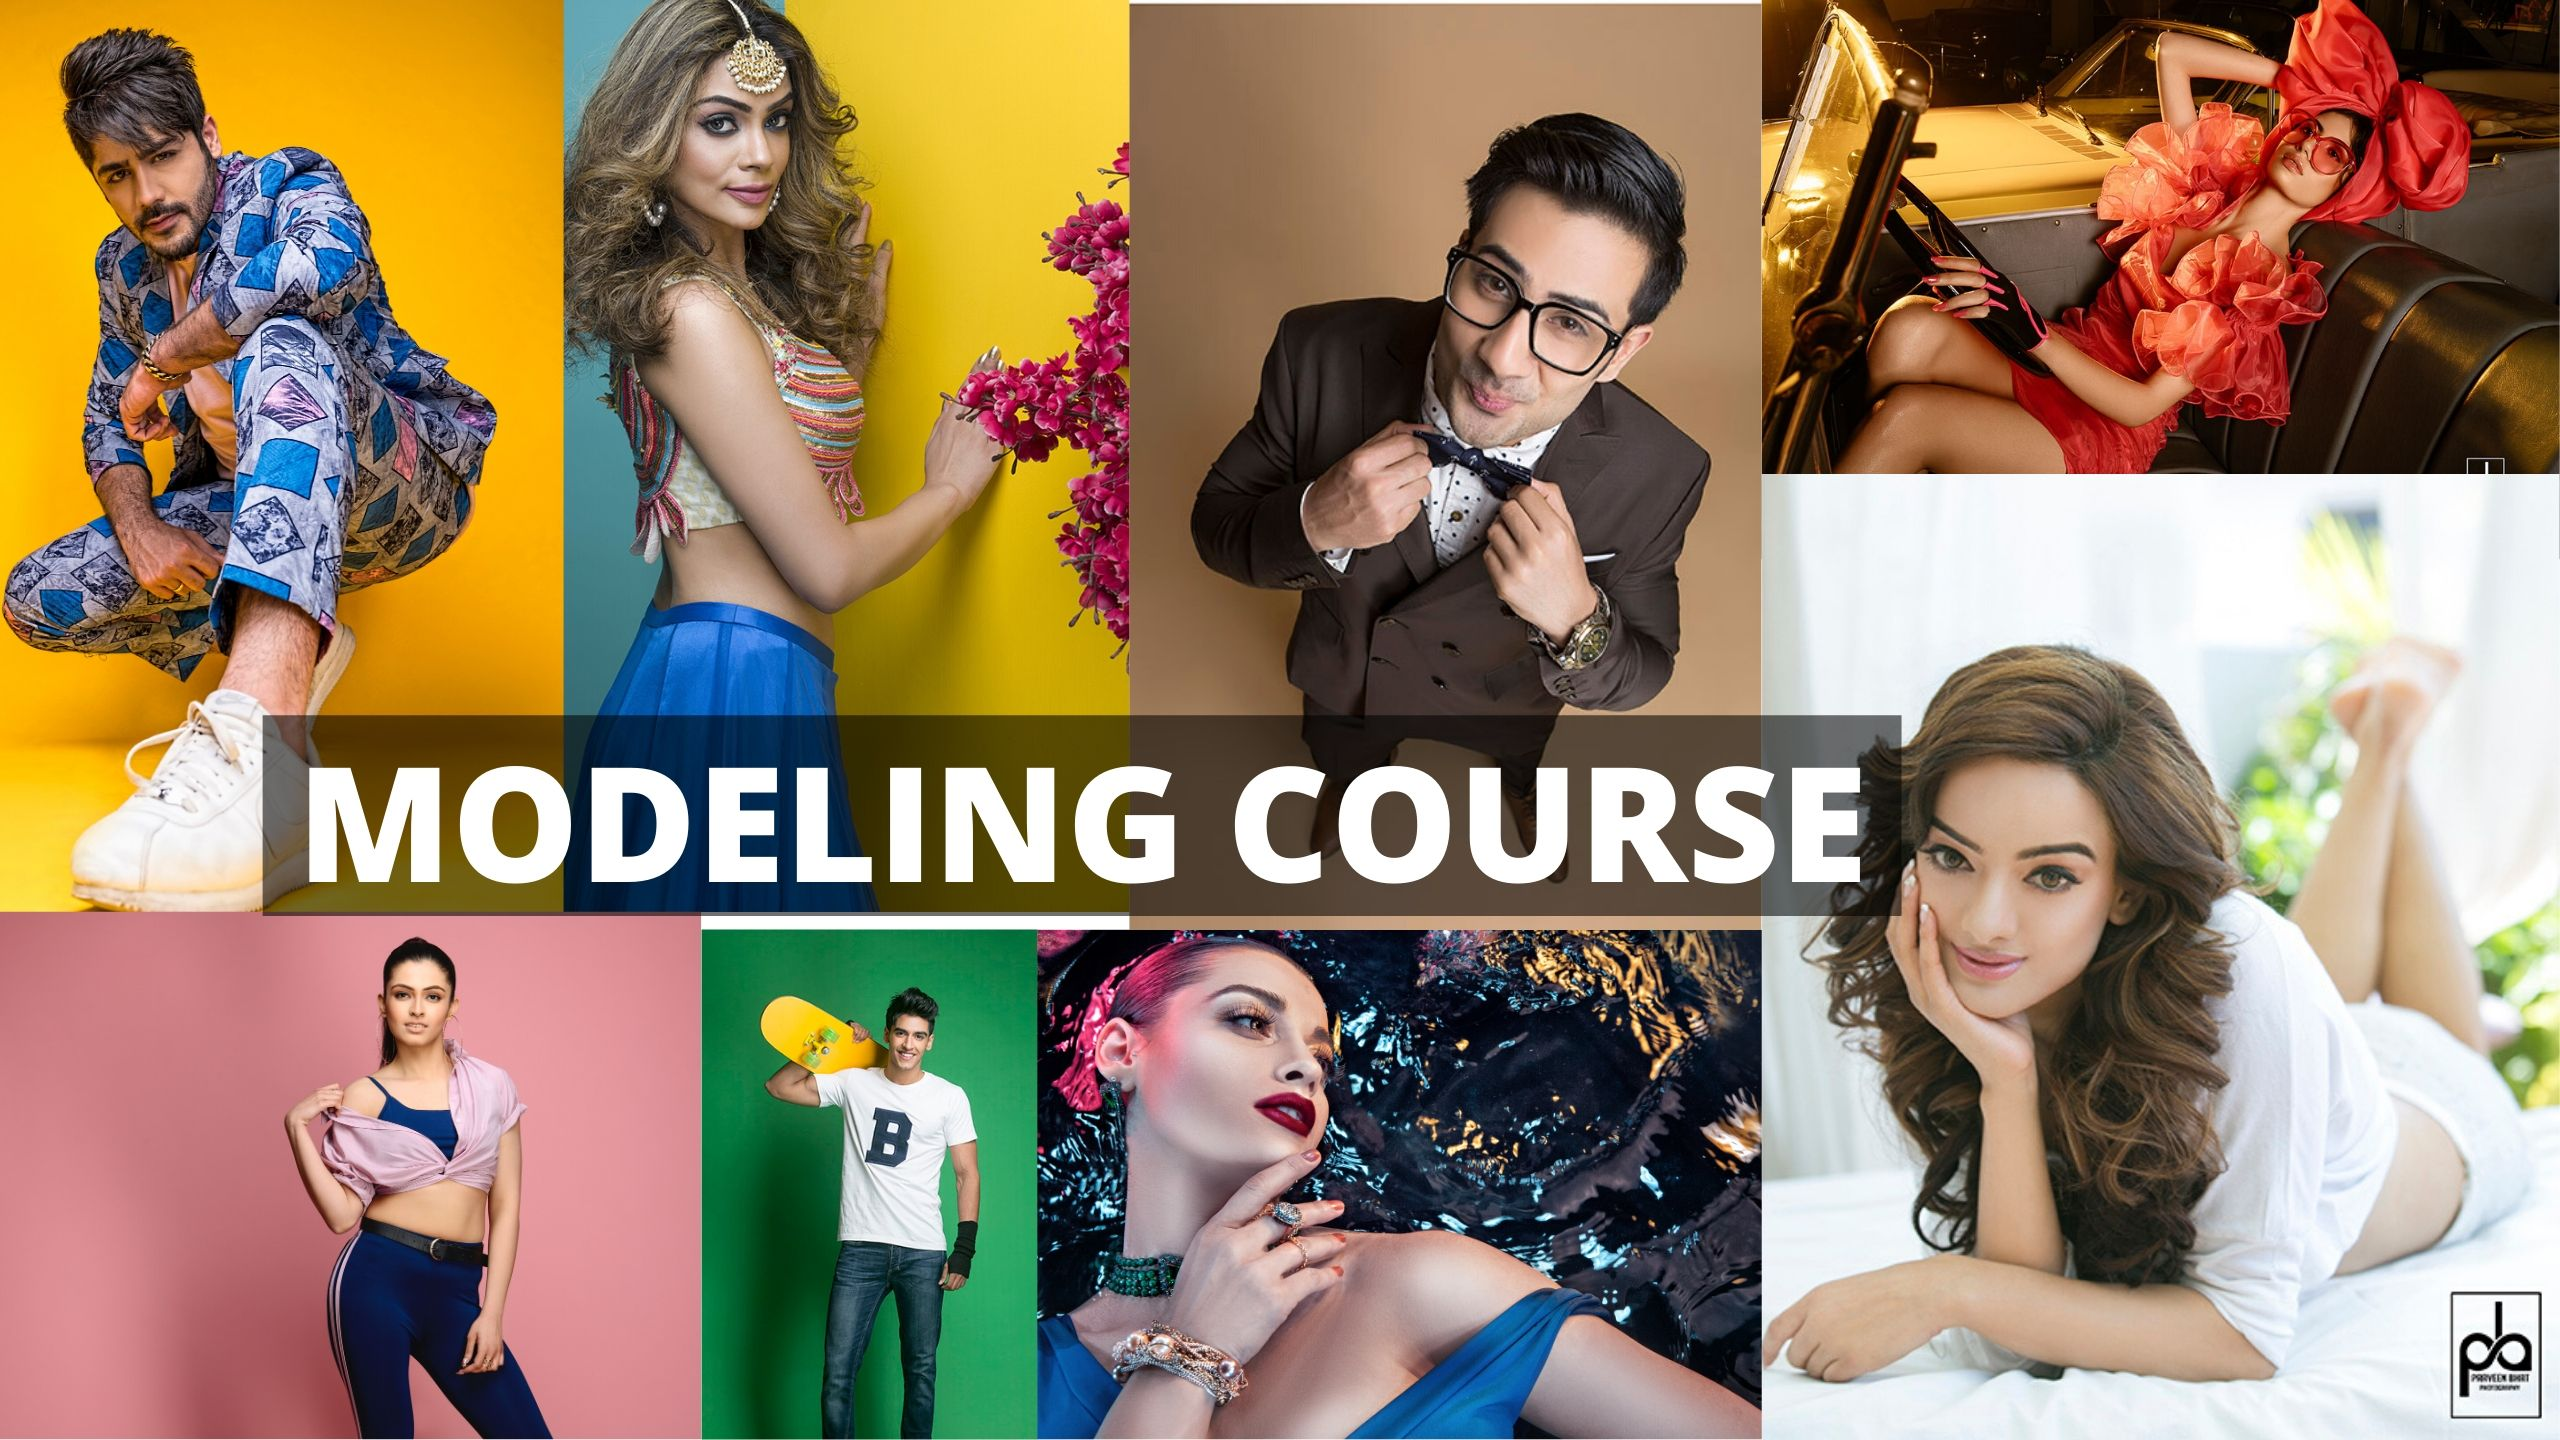 Best modeling course G&G modeling institute